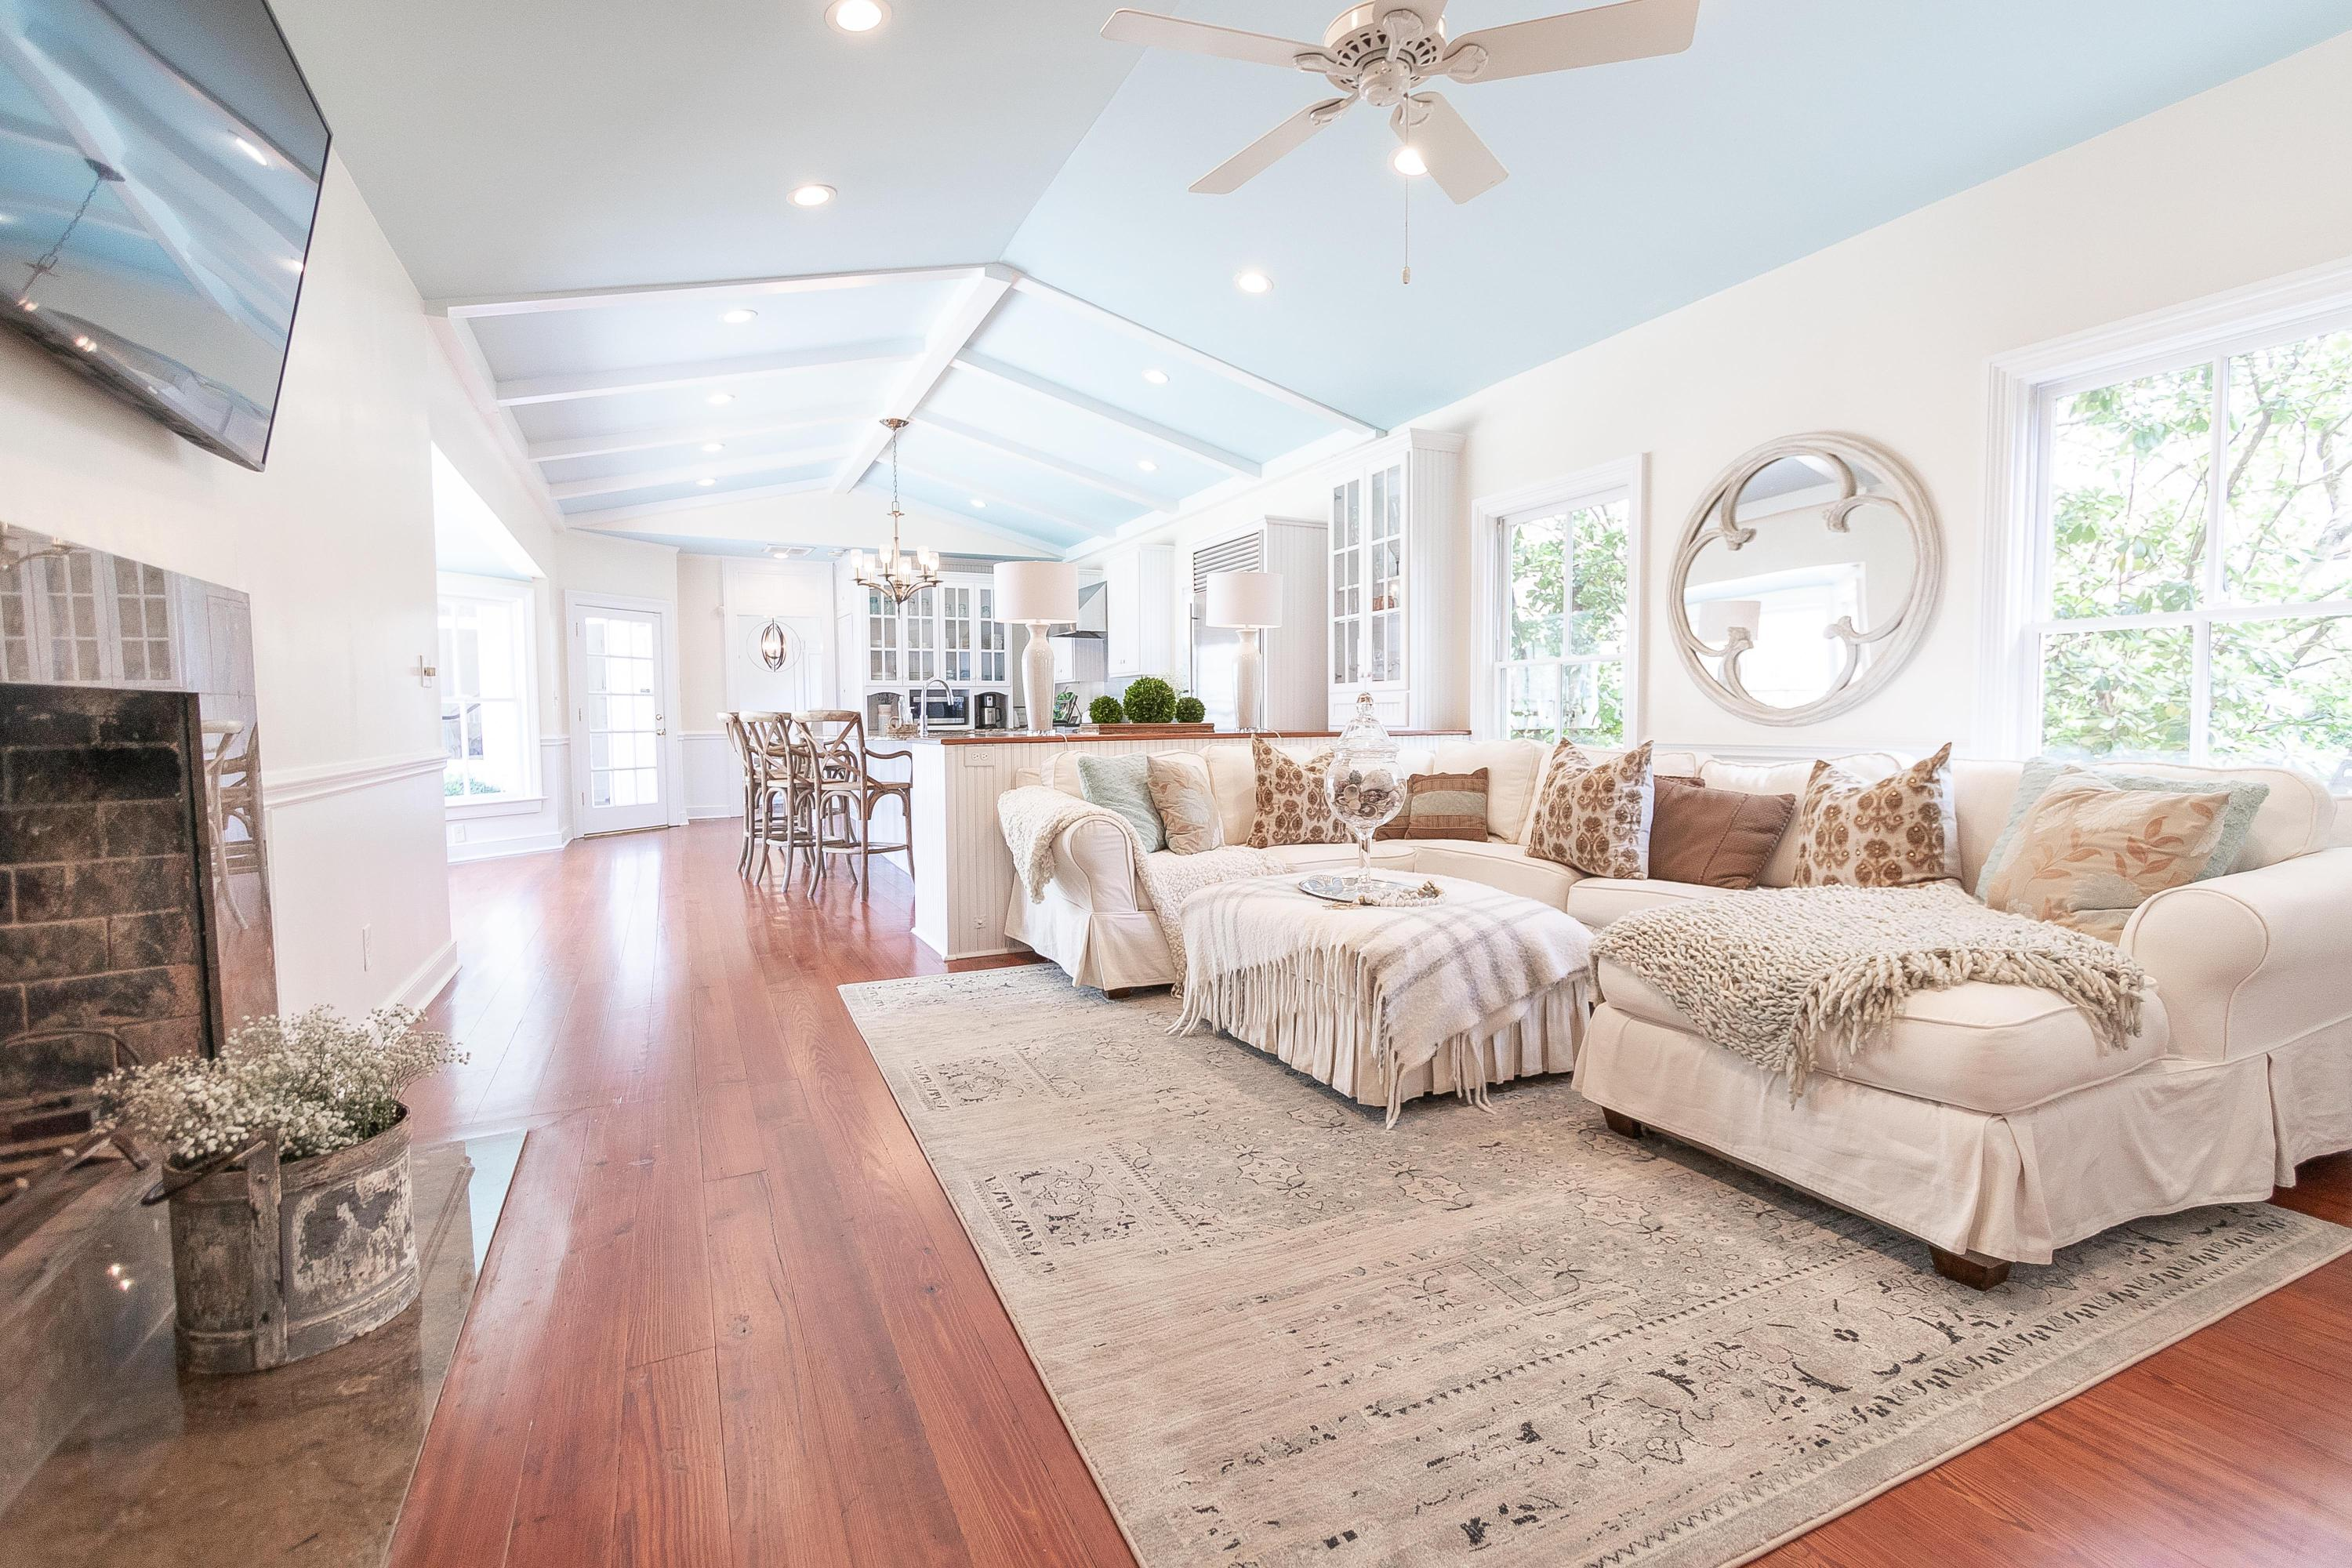 South of Broad Homes For Sale - 47 South Battery, Charleston, SC - 24